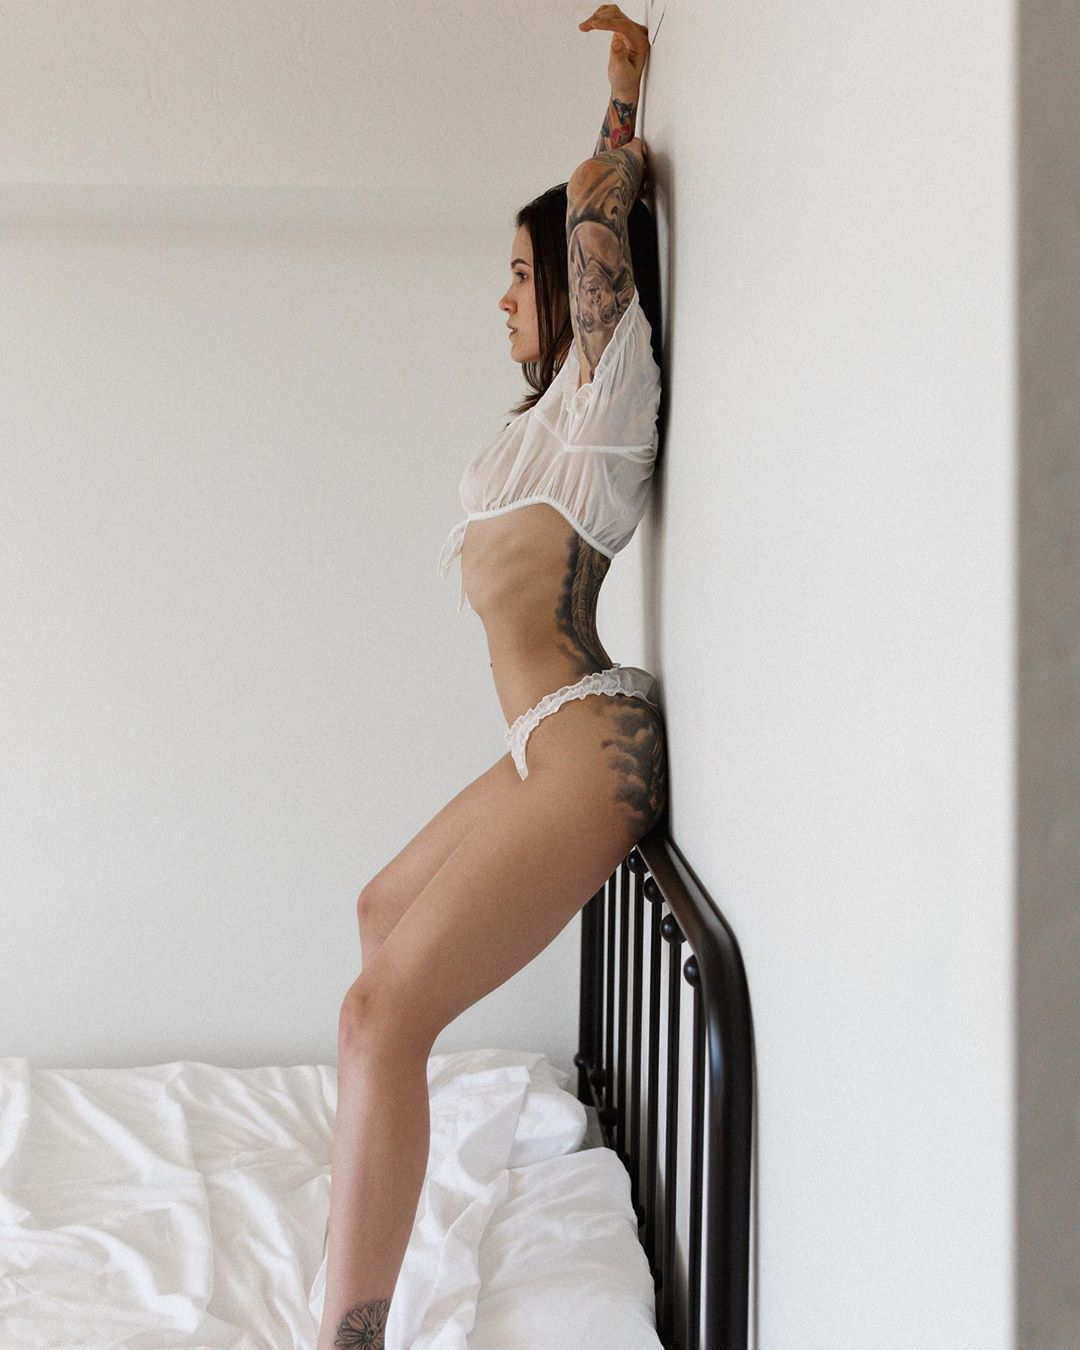 FULL VIDEO: Tigerrlilyx Nude Lily Onlyfans!